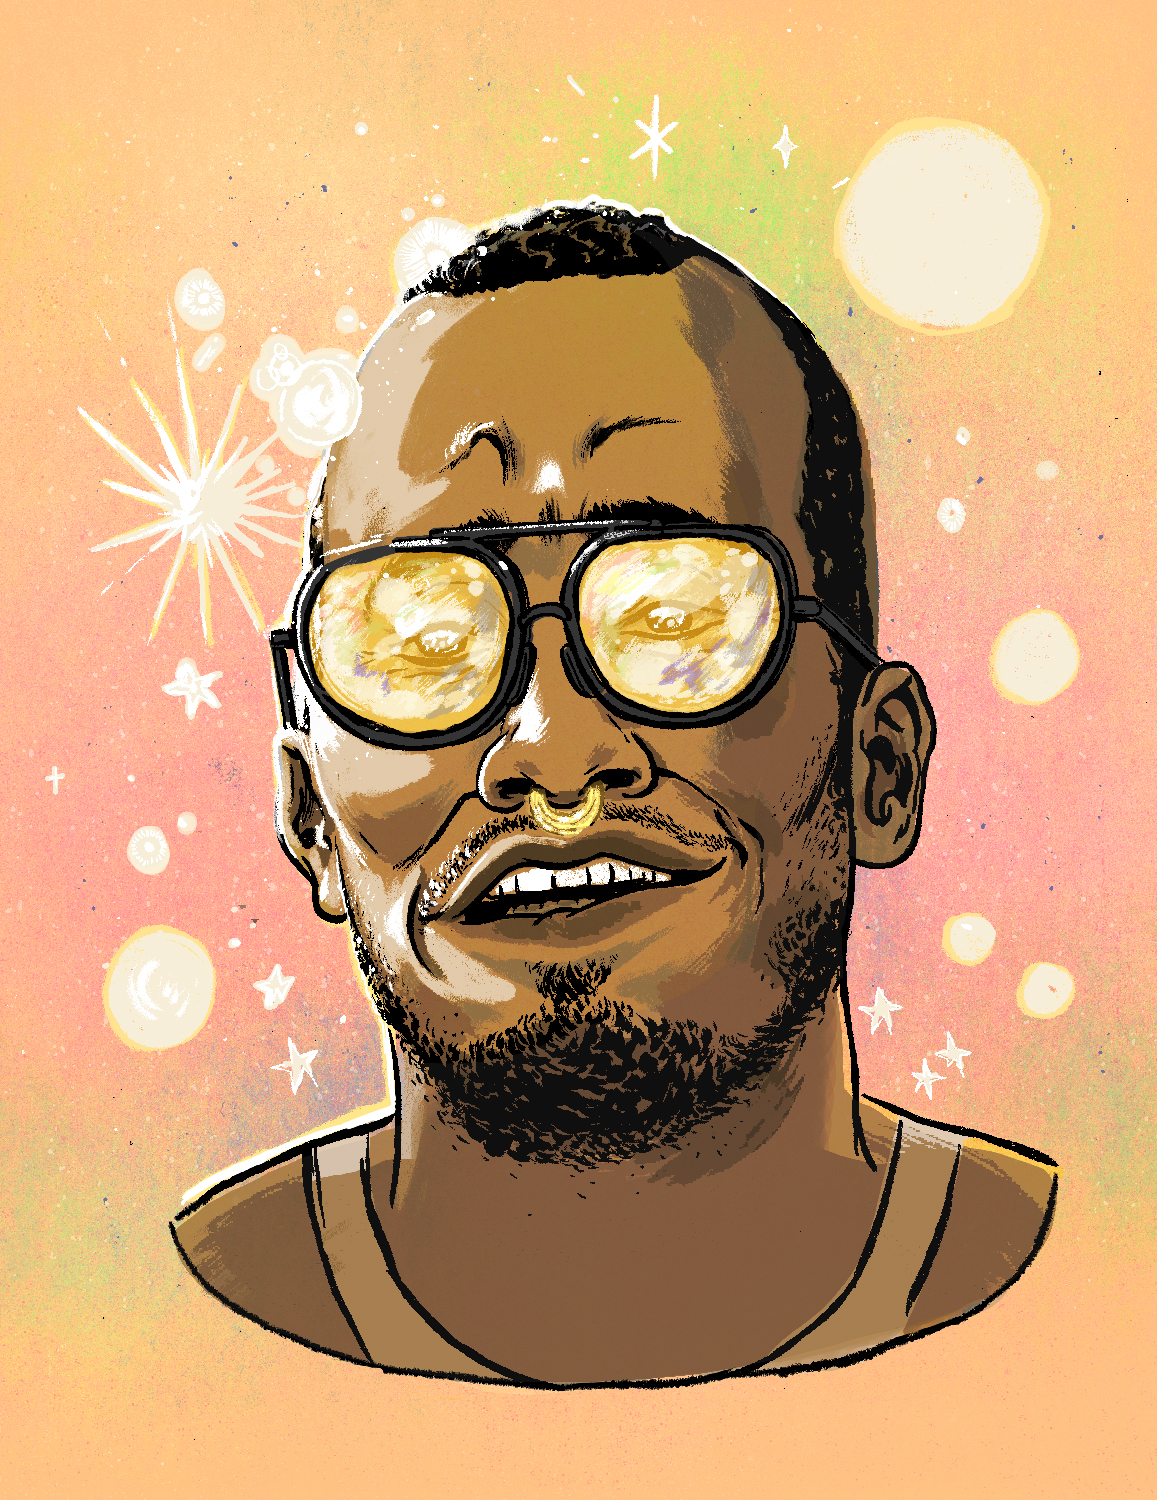 Anderson .Paak - Portrait illustration